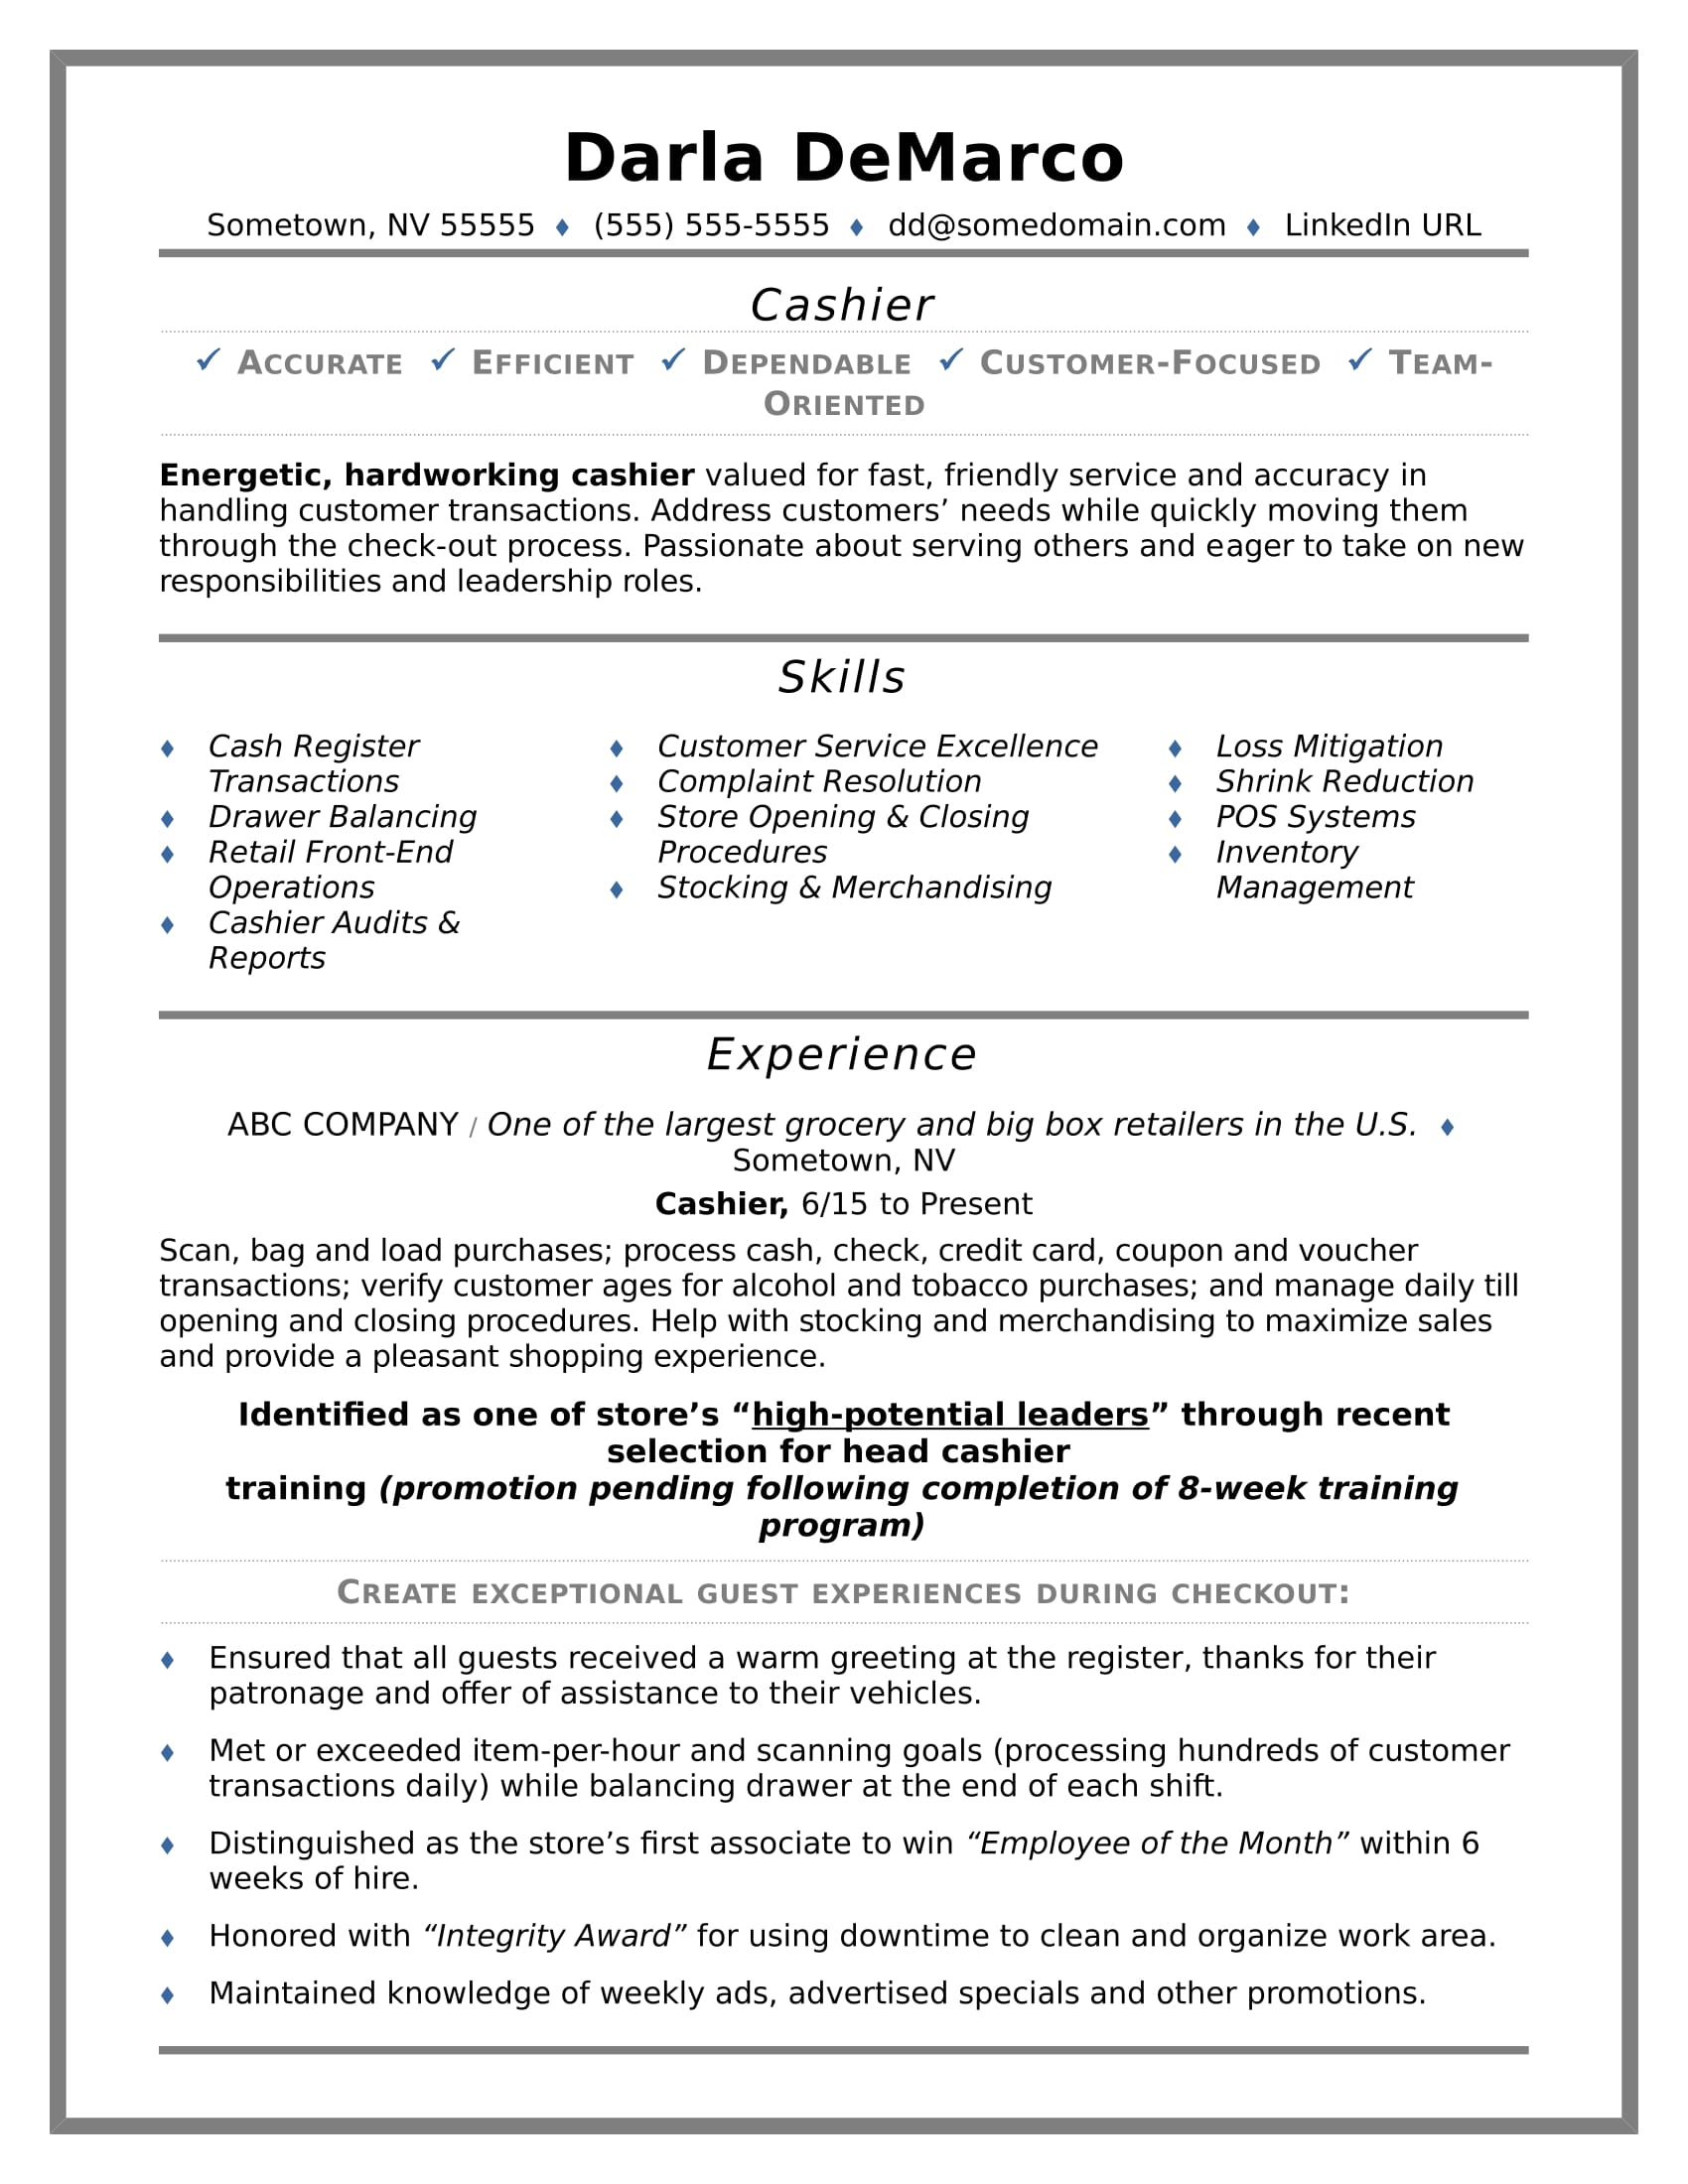 Cashier Resume Sample | Monster.com